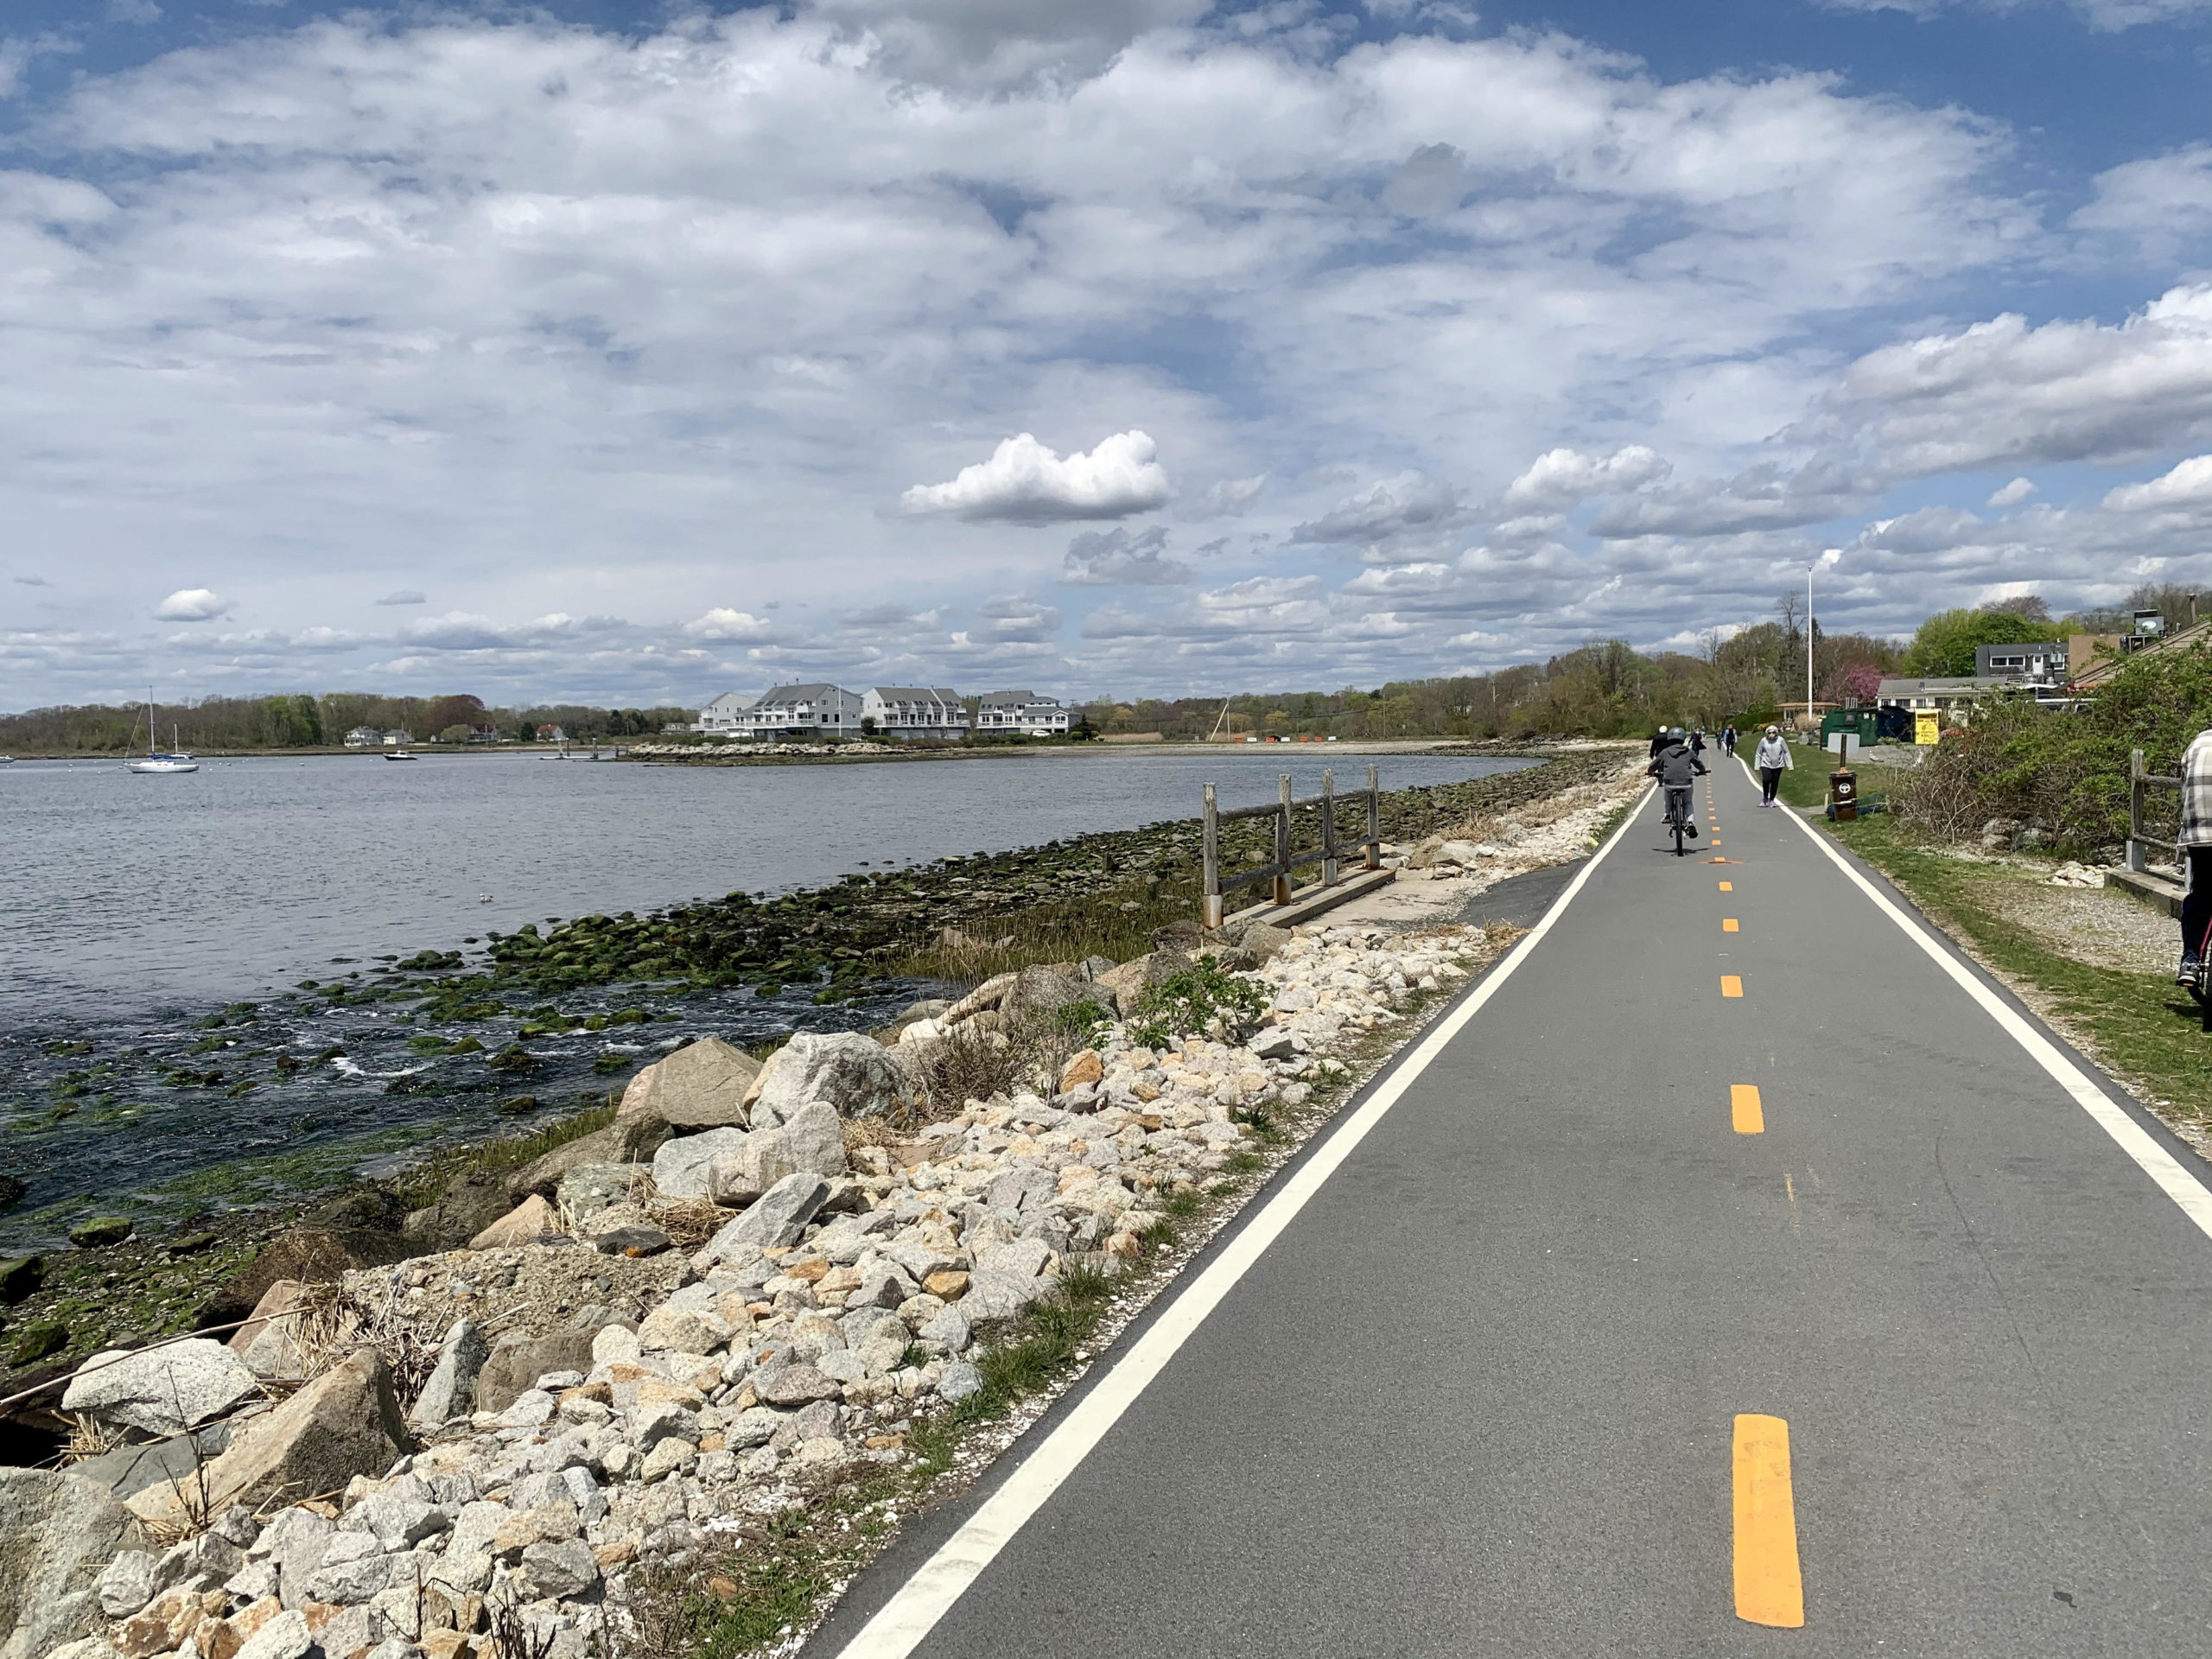 biking in Rhode Island